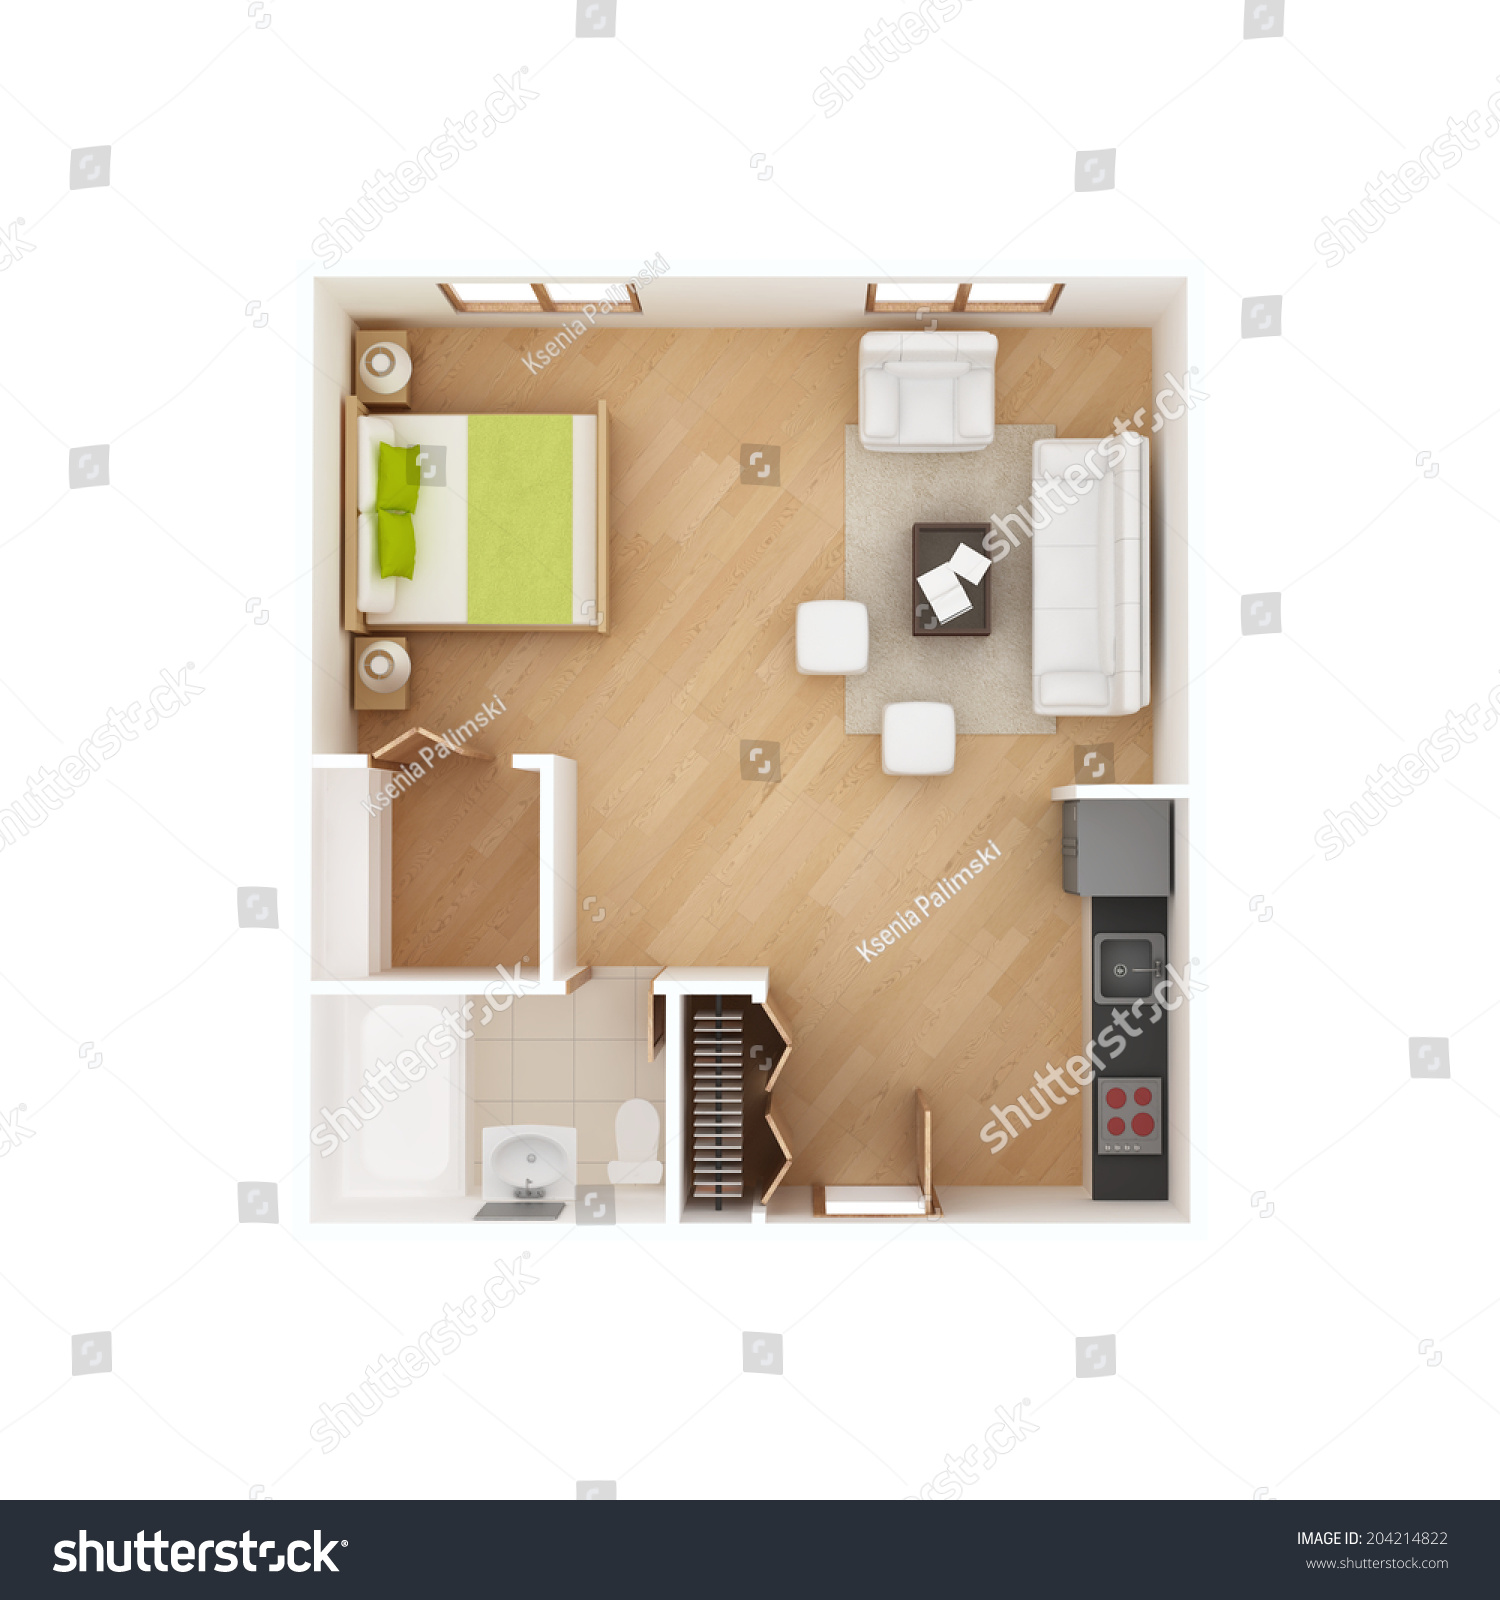 awesome studio apartments floor plans ideas - mericamedia